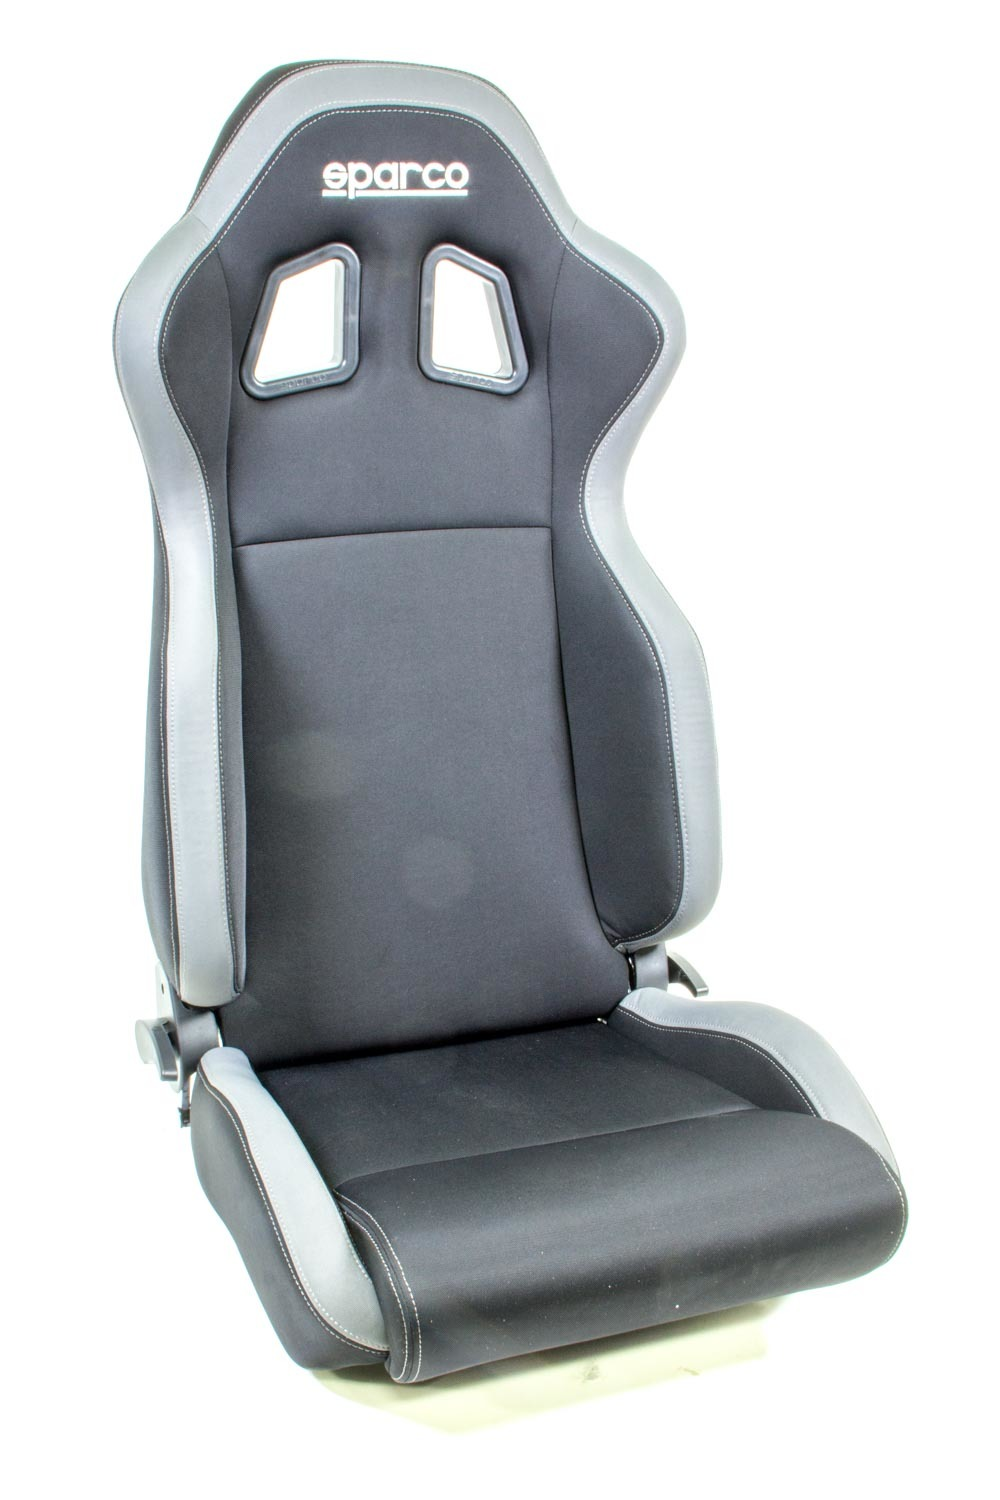 Sparco 00961NRGR Seat, R100, Reclining, Side Bolsters, Harness Openings, Fiberglass Composite, Fabric, Gray / Black, Each